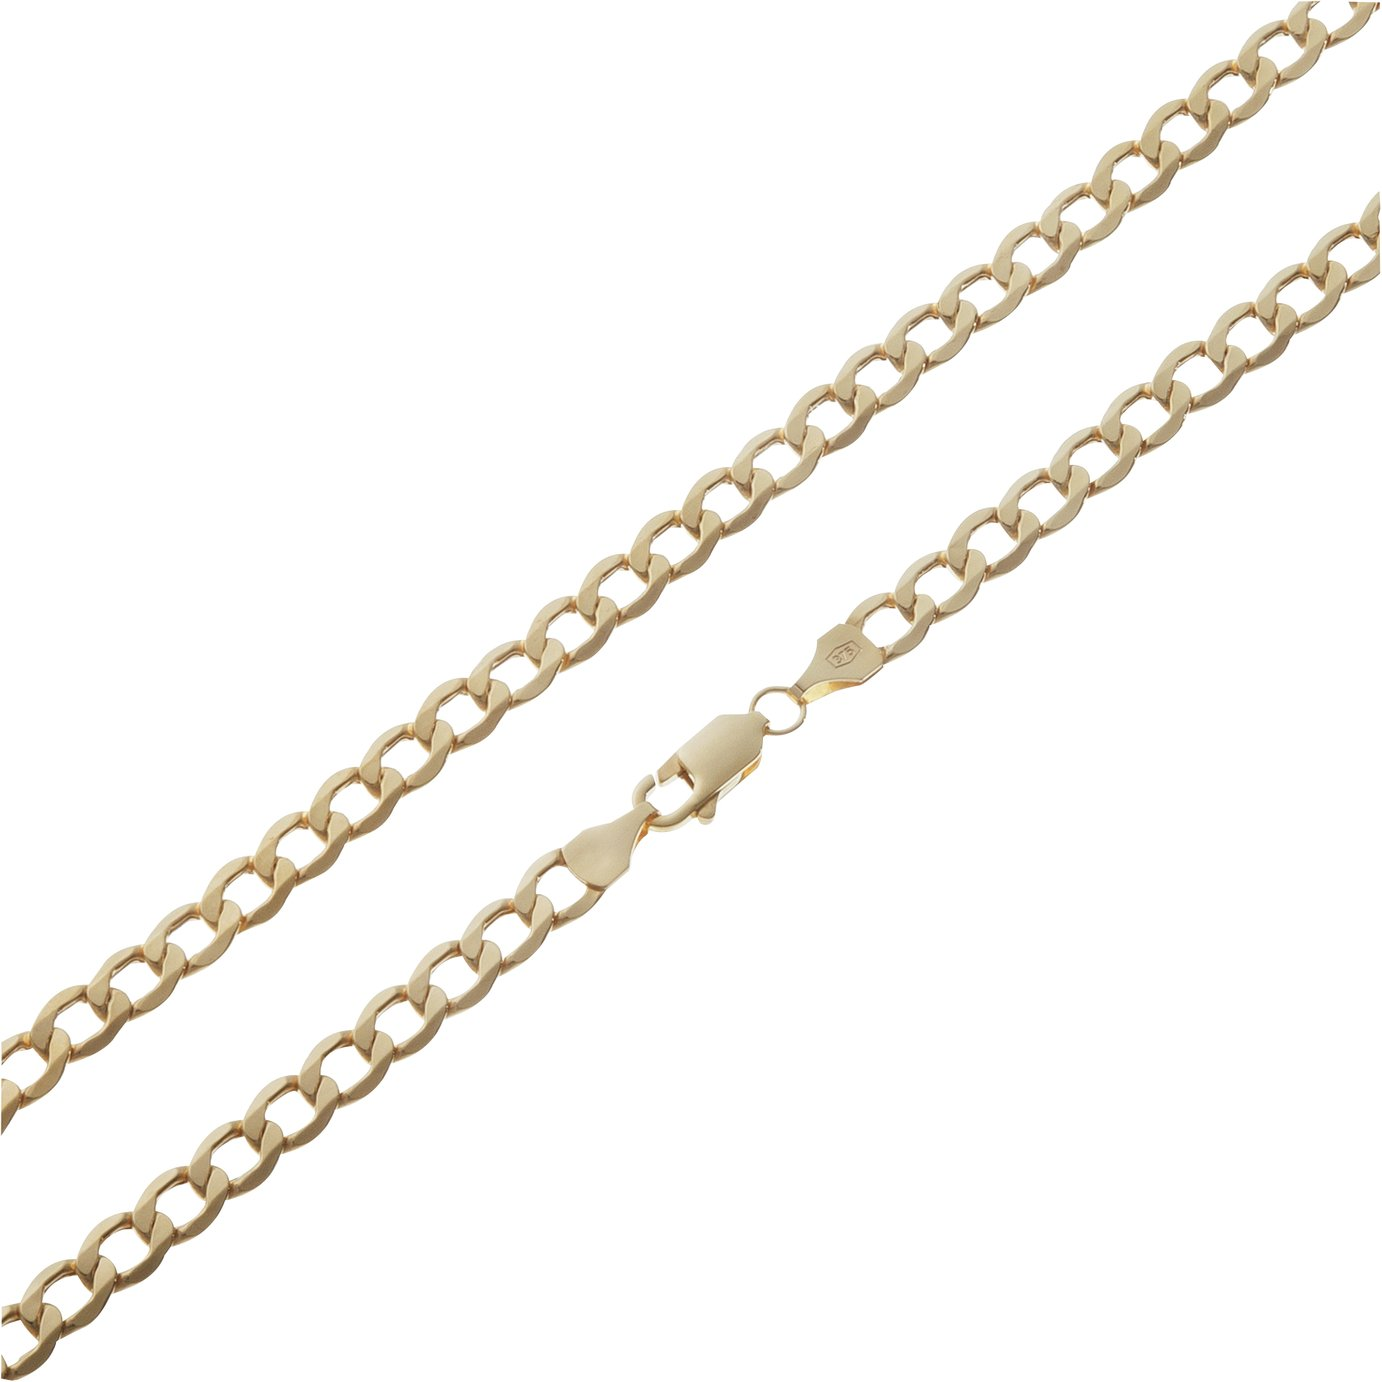 Sale On Revere 9ct Gold Plated Sterling Silver Solid Curb